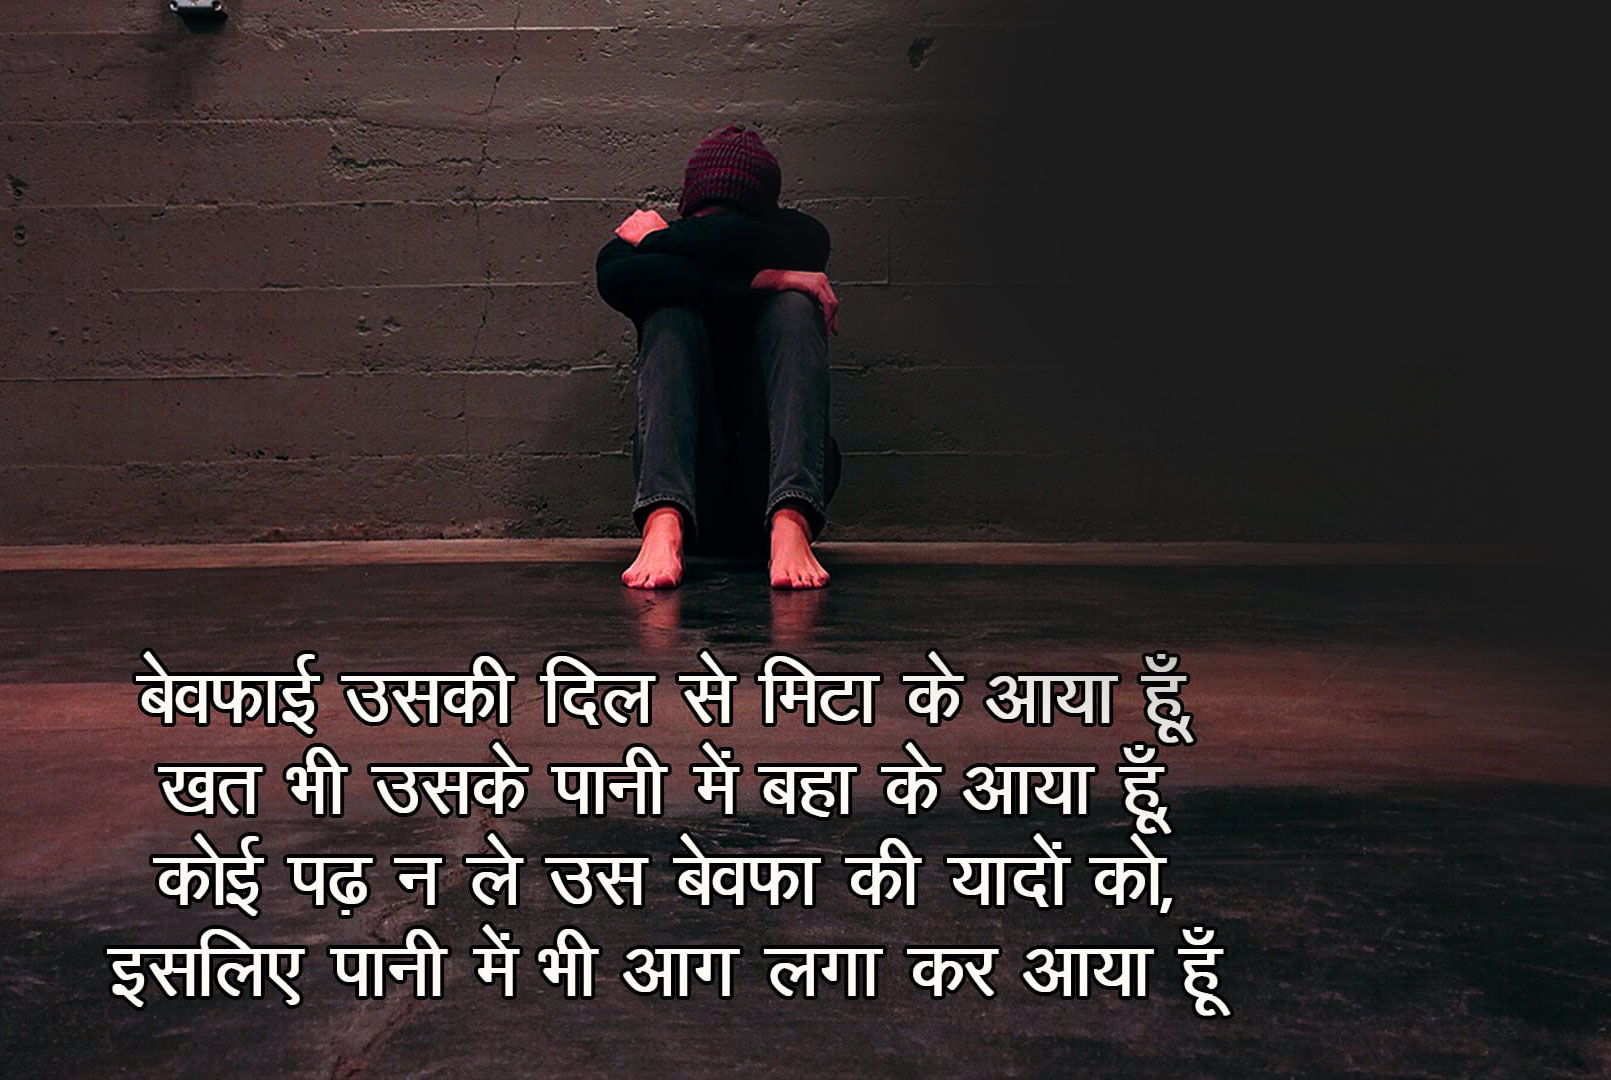 Hindi-Bewafa-Shayari-Images-60